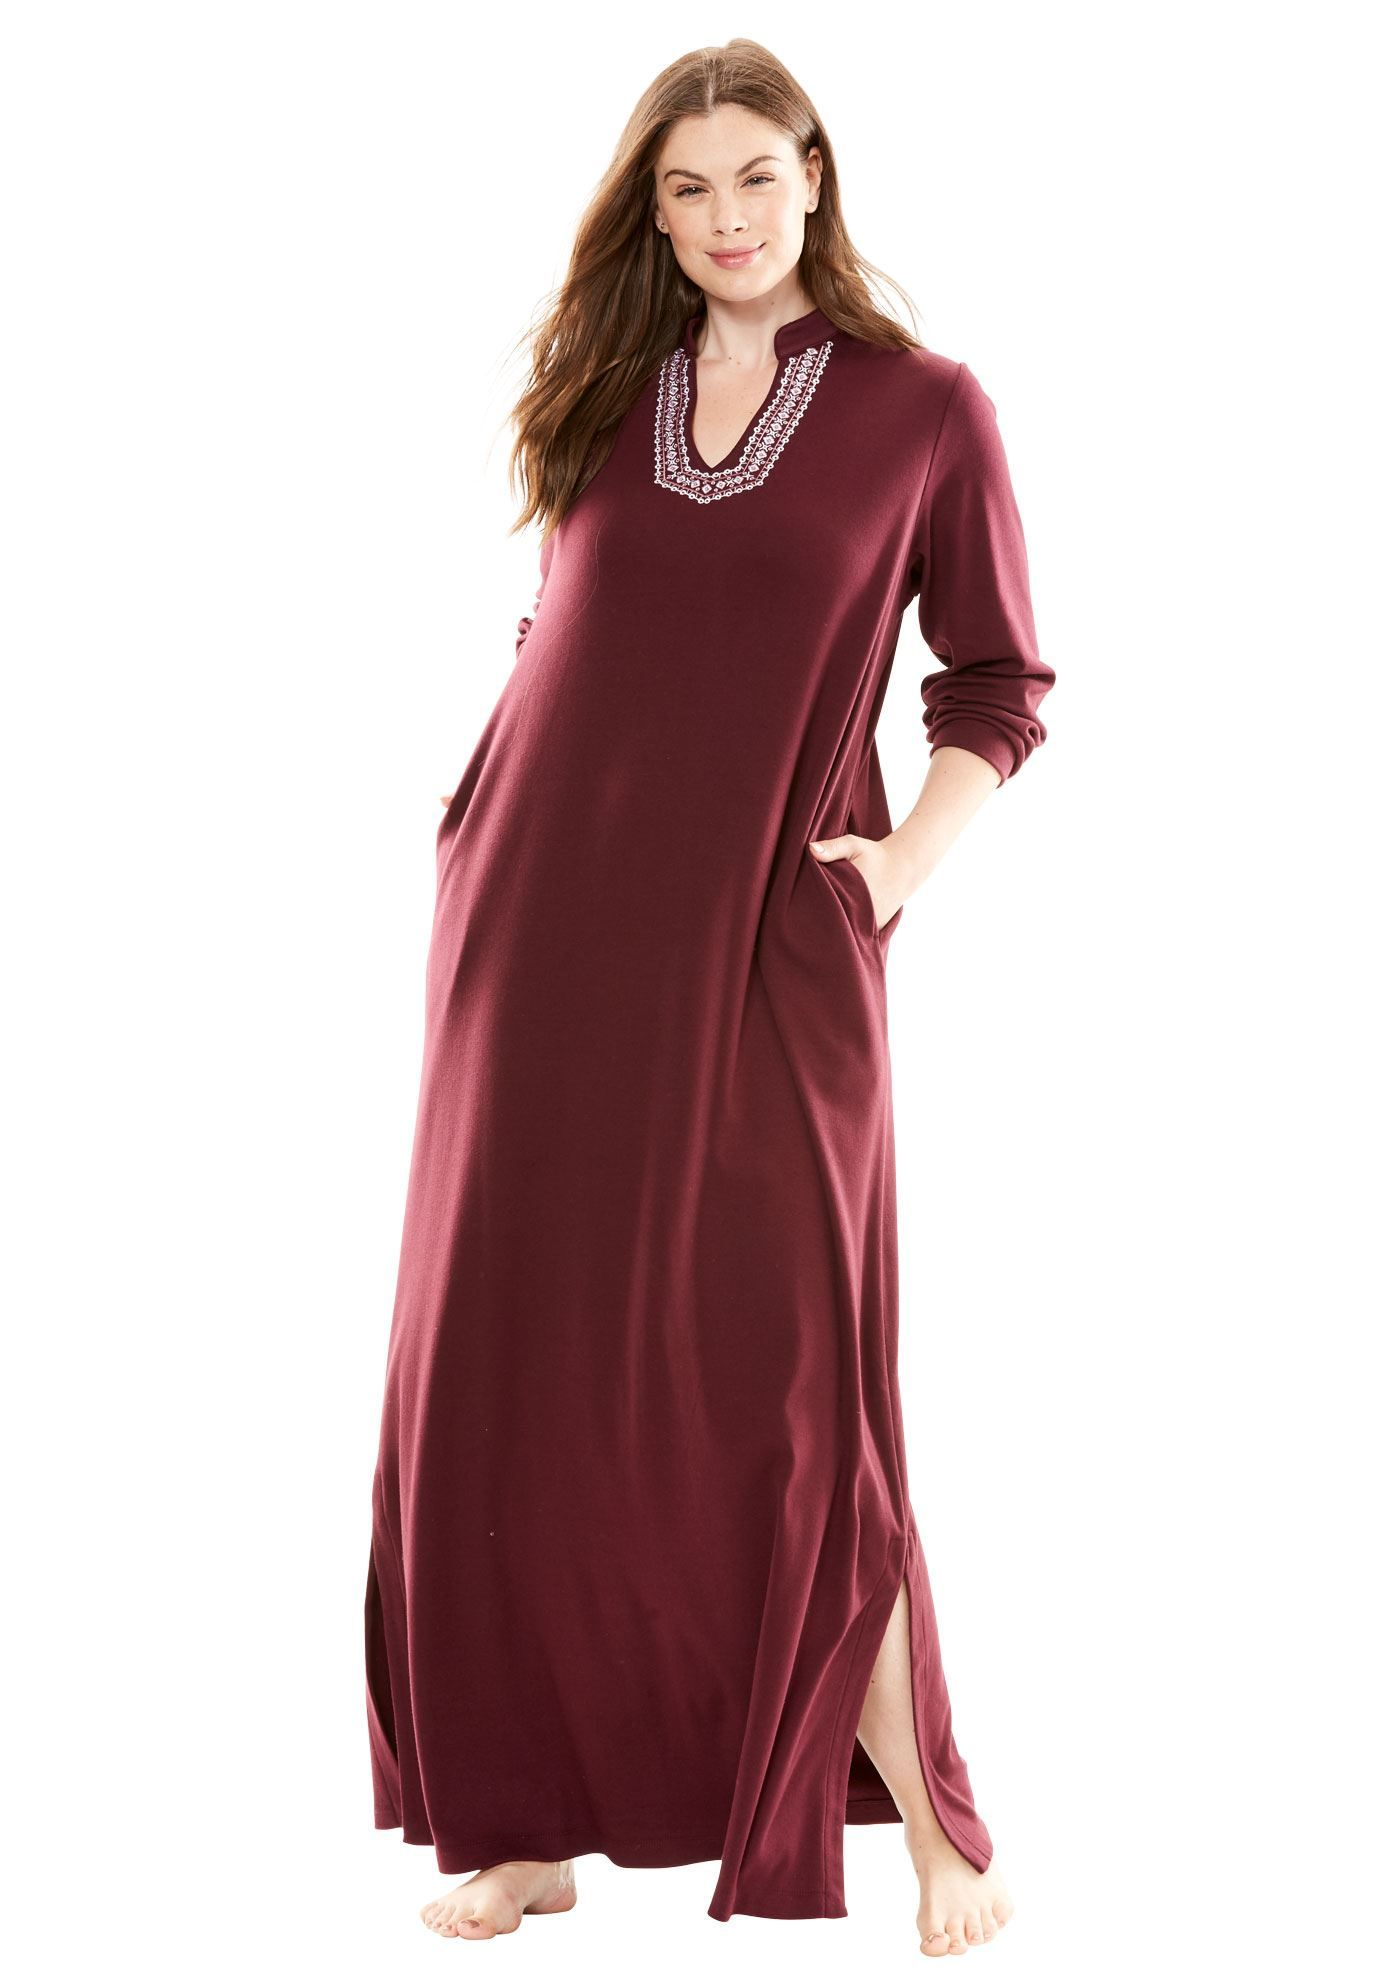 4c8c6cac1a Long tag-free lounger by Only Necessities - Women s Plus Size Clothing. Long  Embroidered Knit ...